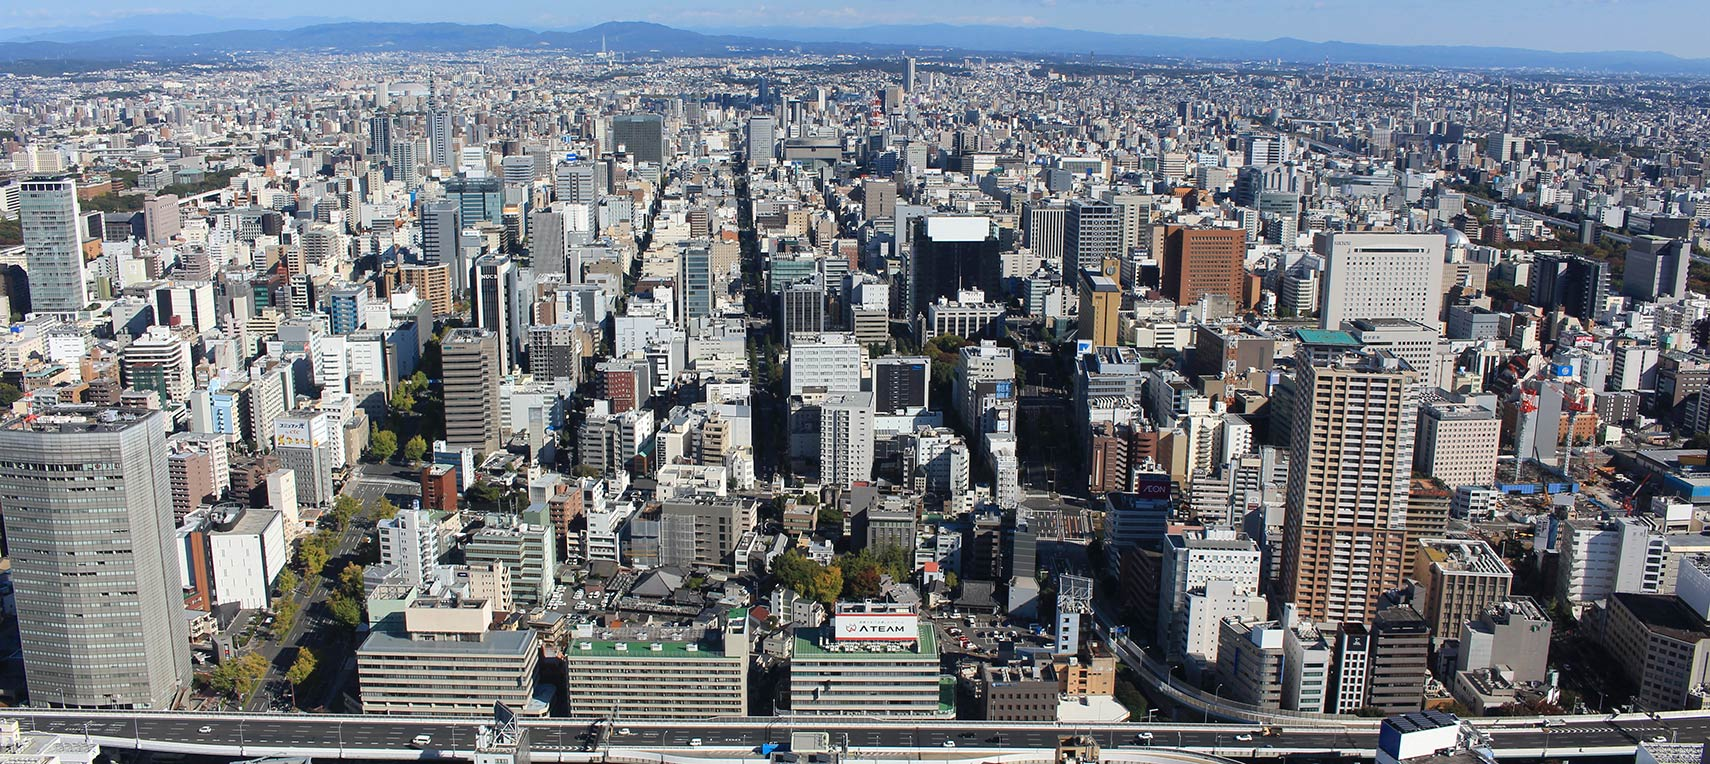 View of Nagoya, the largest city in the Chūbu region of Japan